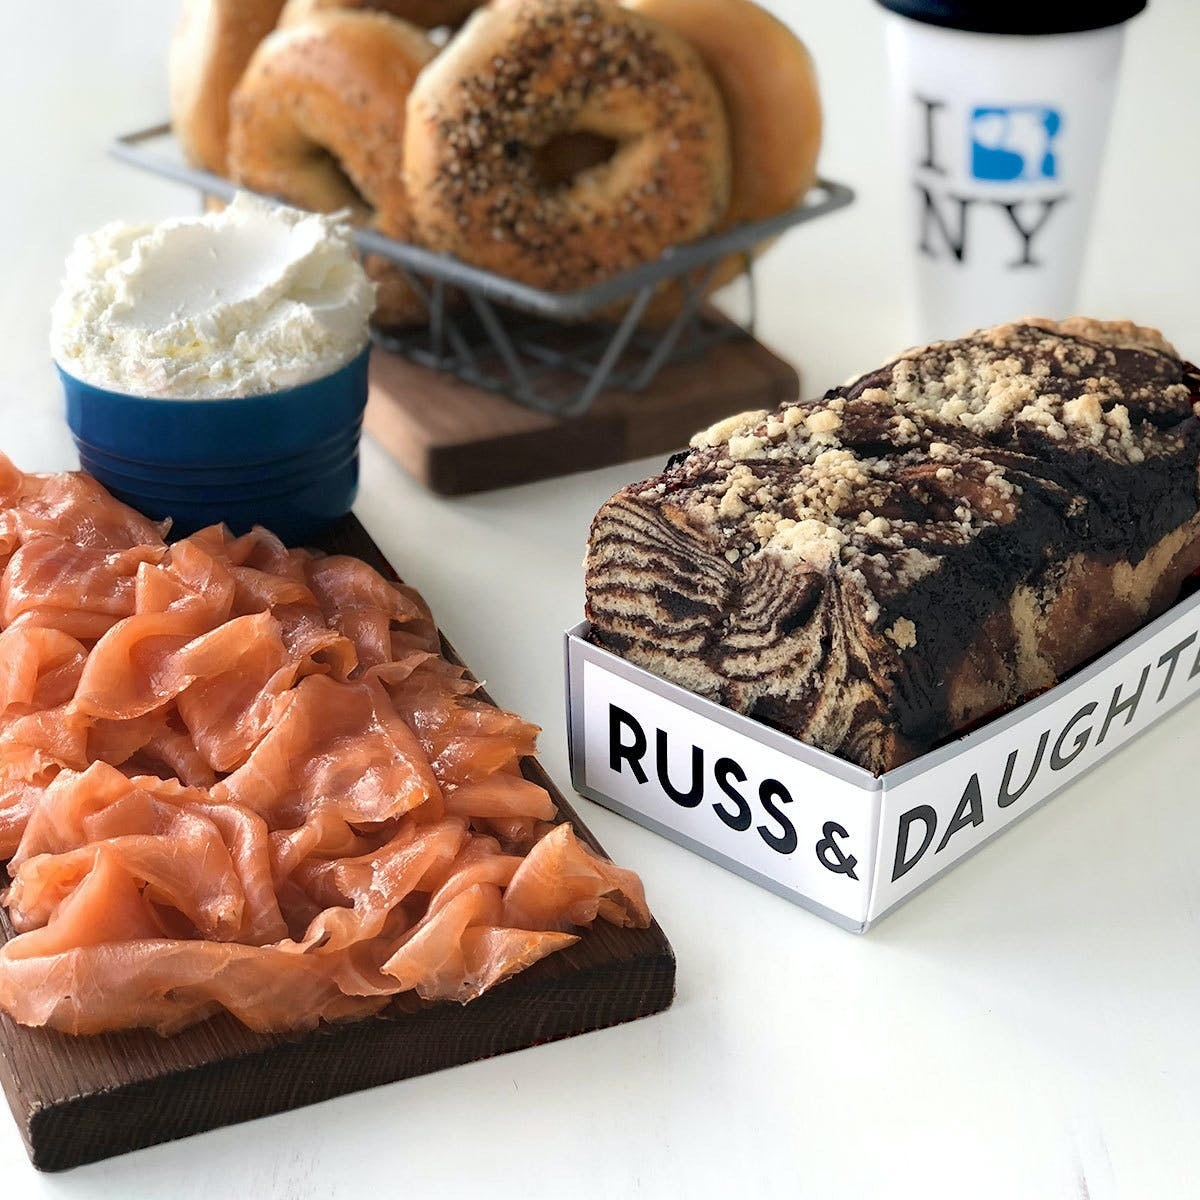 A cutting board topped with sliced lox, a box of chocolate babka, bagels, and cream cheese from Russ and Daughter's.